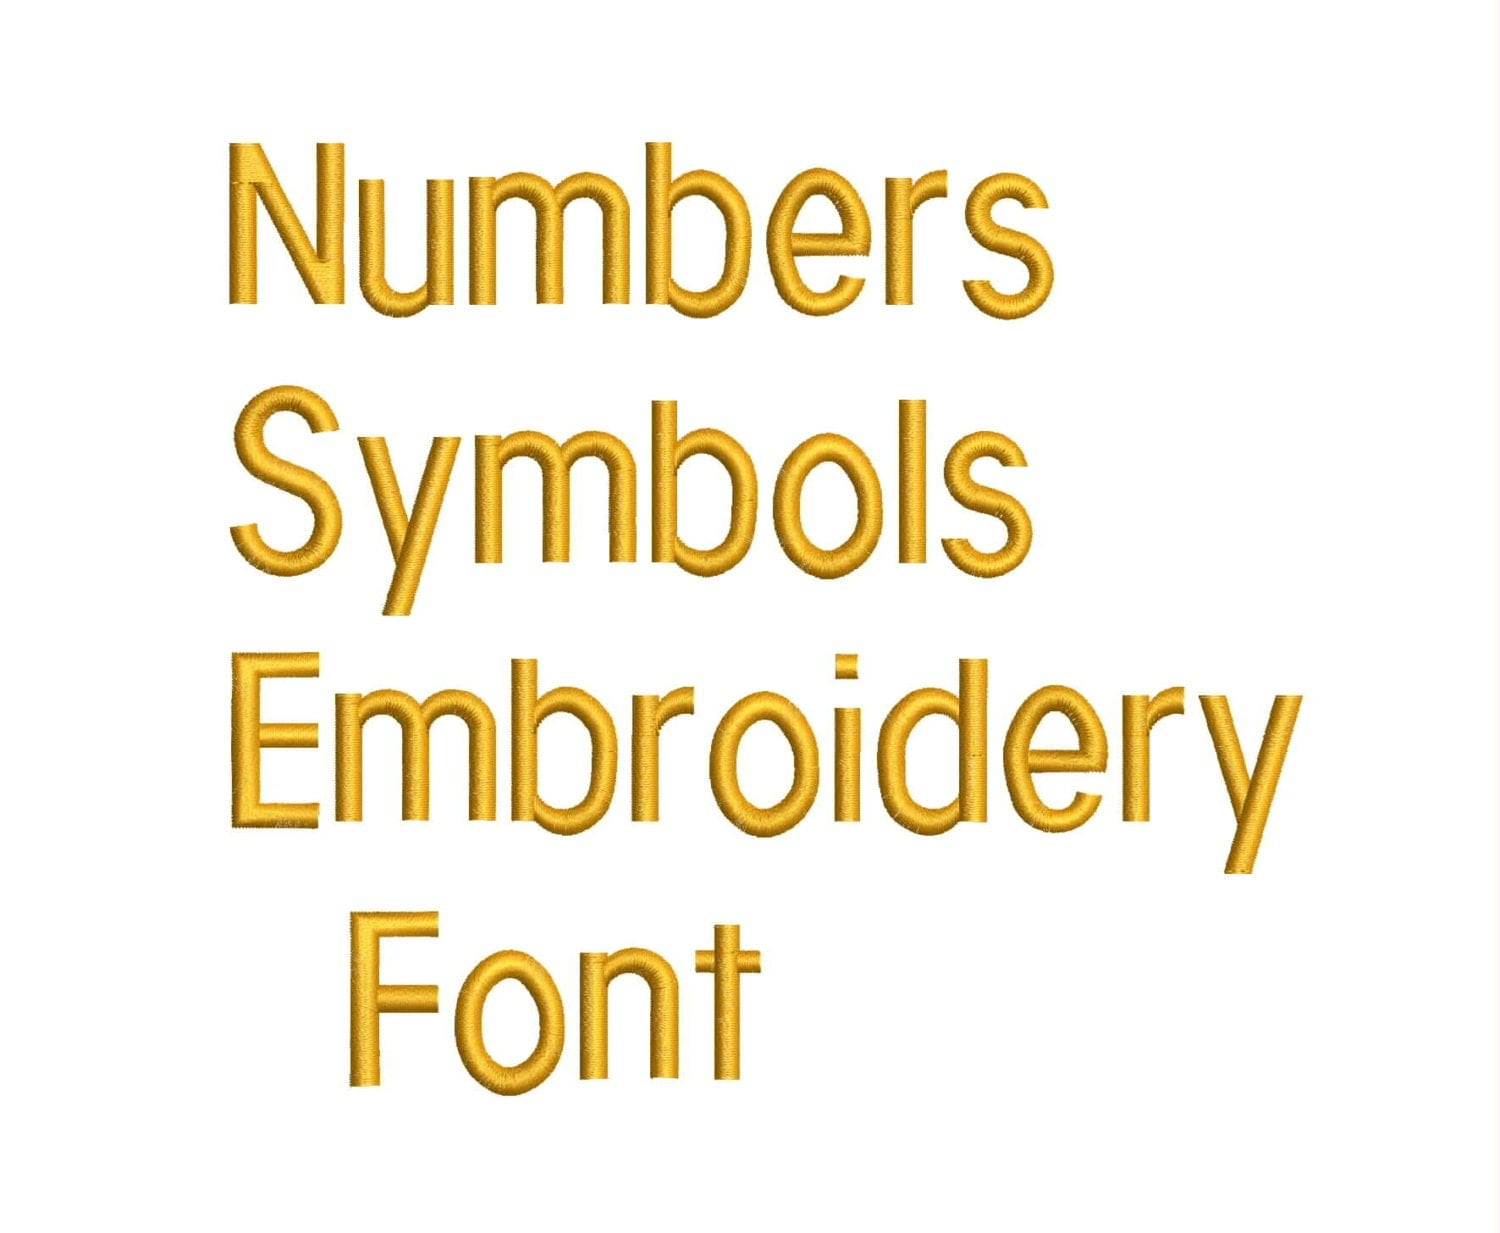 machine embroidery font designs letters numbers symbols alphabet 0 5  1  u0026 1 5 inch sizes from